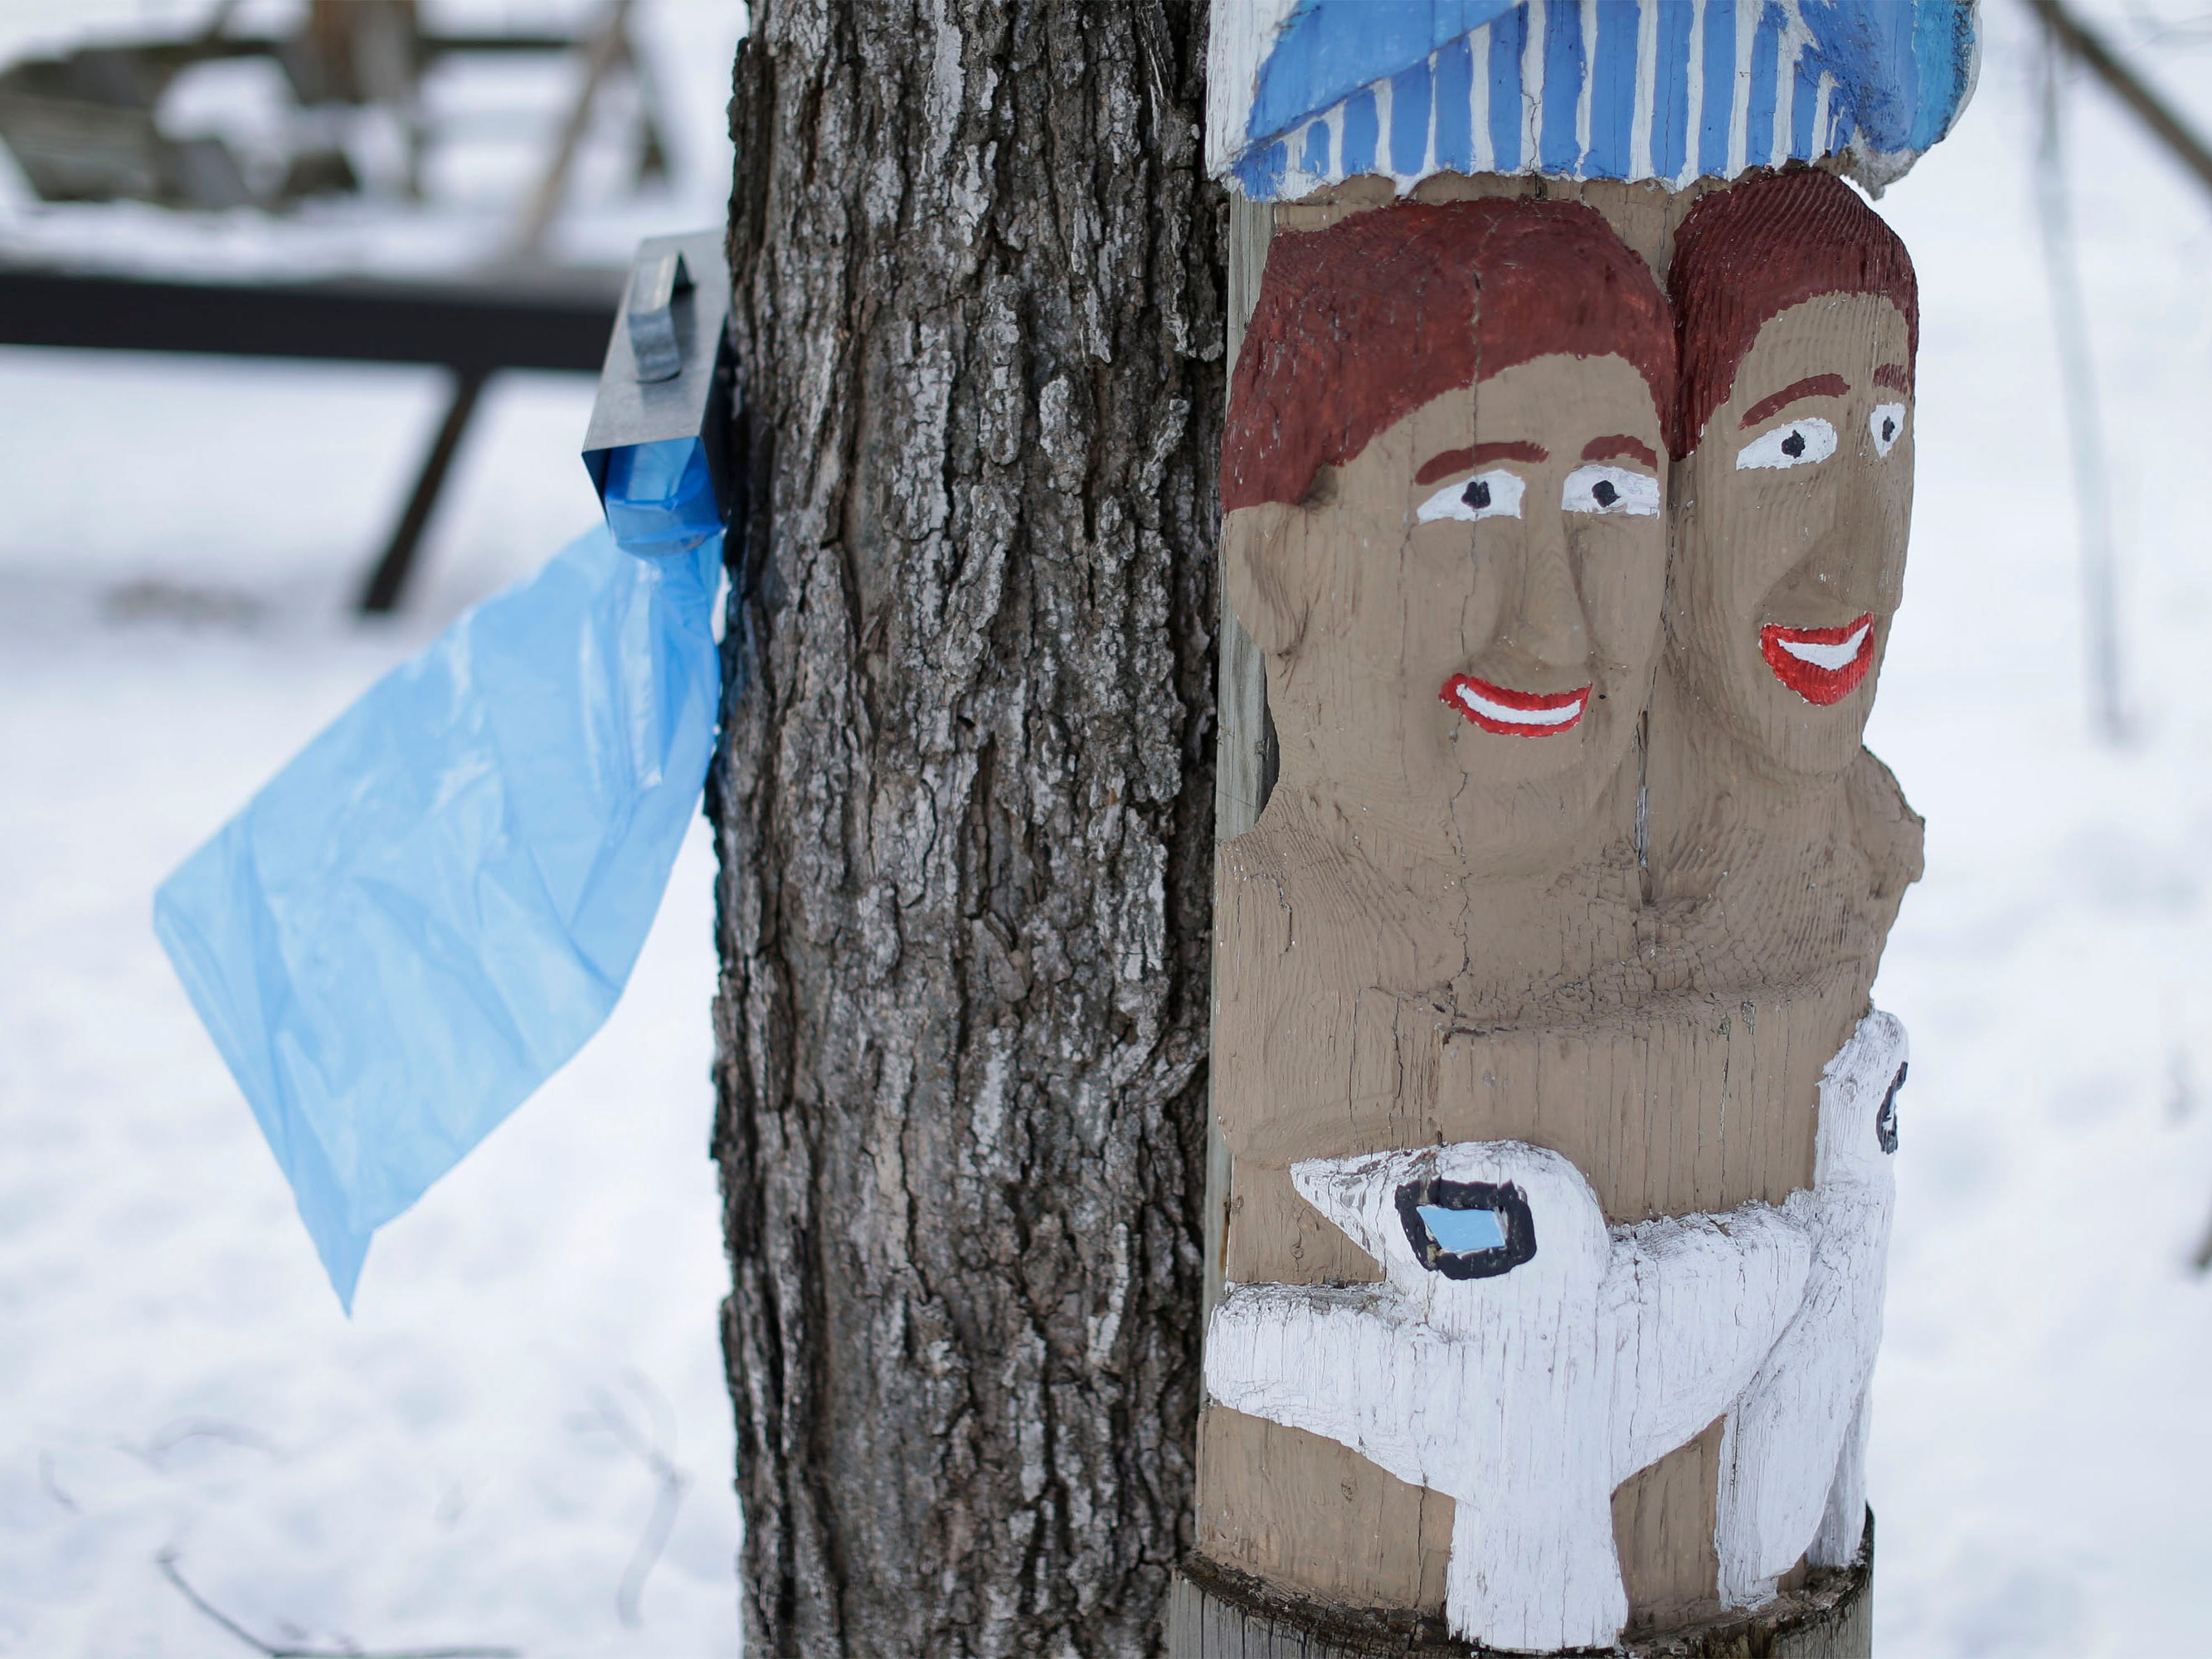 Wind flaps a maple sap bag by a smiling totem pole at the Ellwood H. May Environmental Park, Tuesday, March 5, 2019, in Sheboygan, Wis.